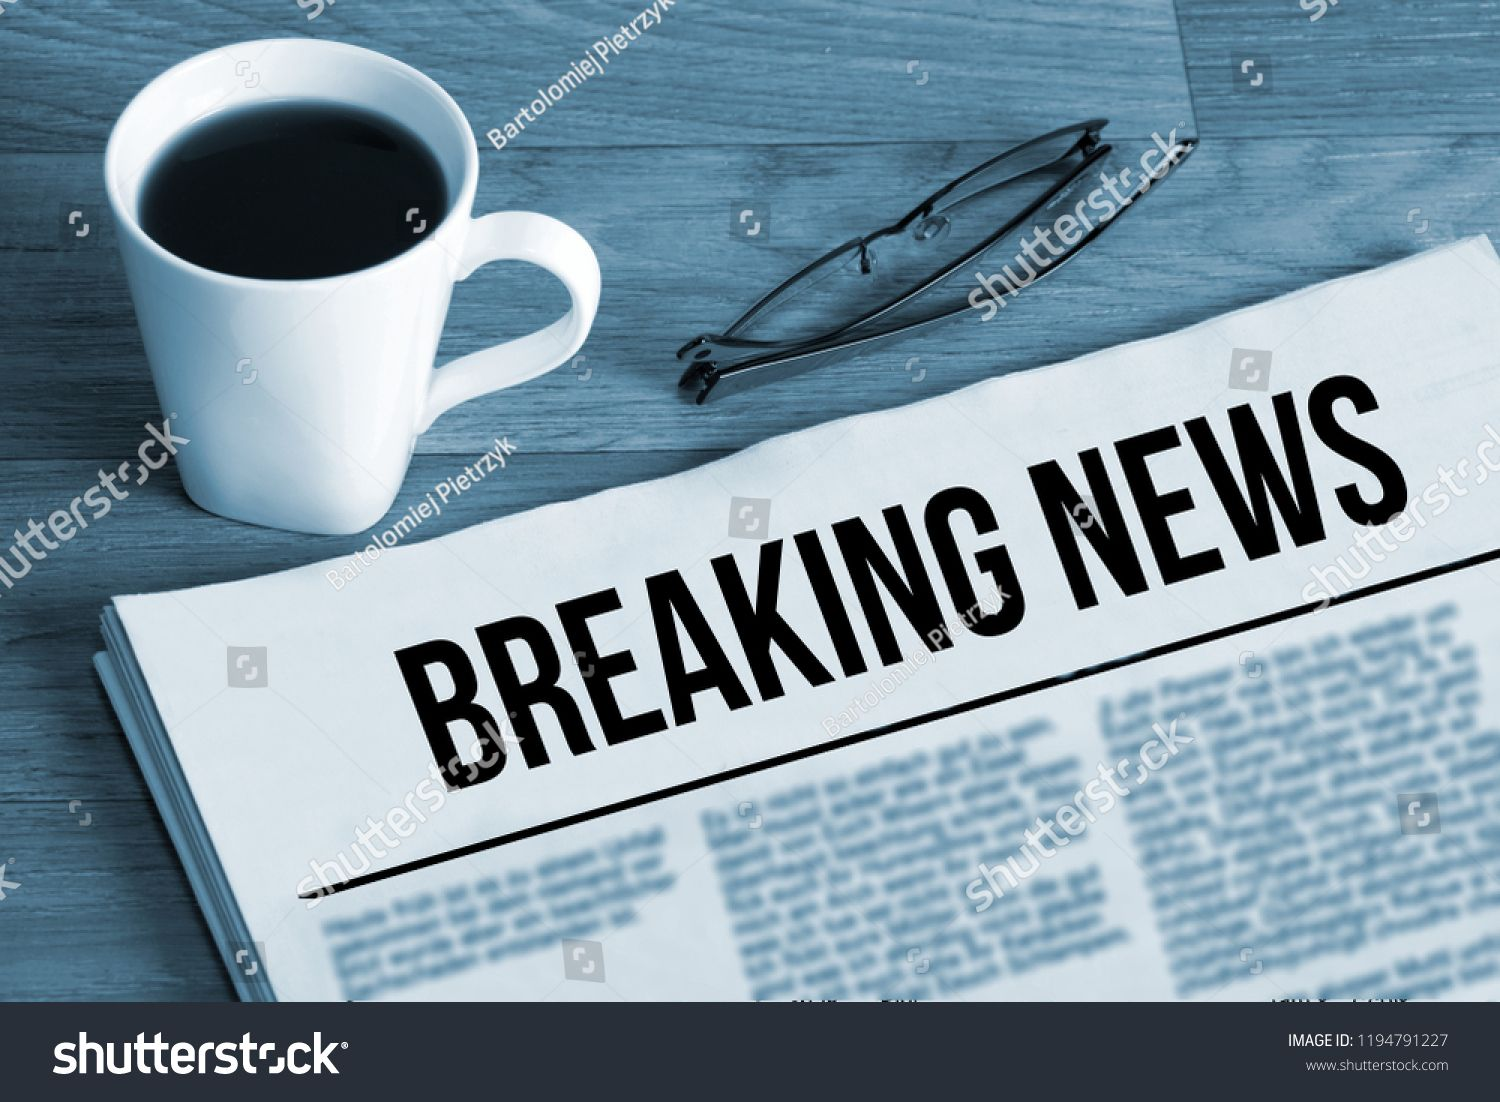 A cup of coffee and newspaper titled Breaking